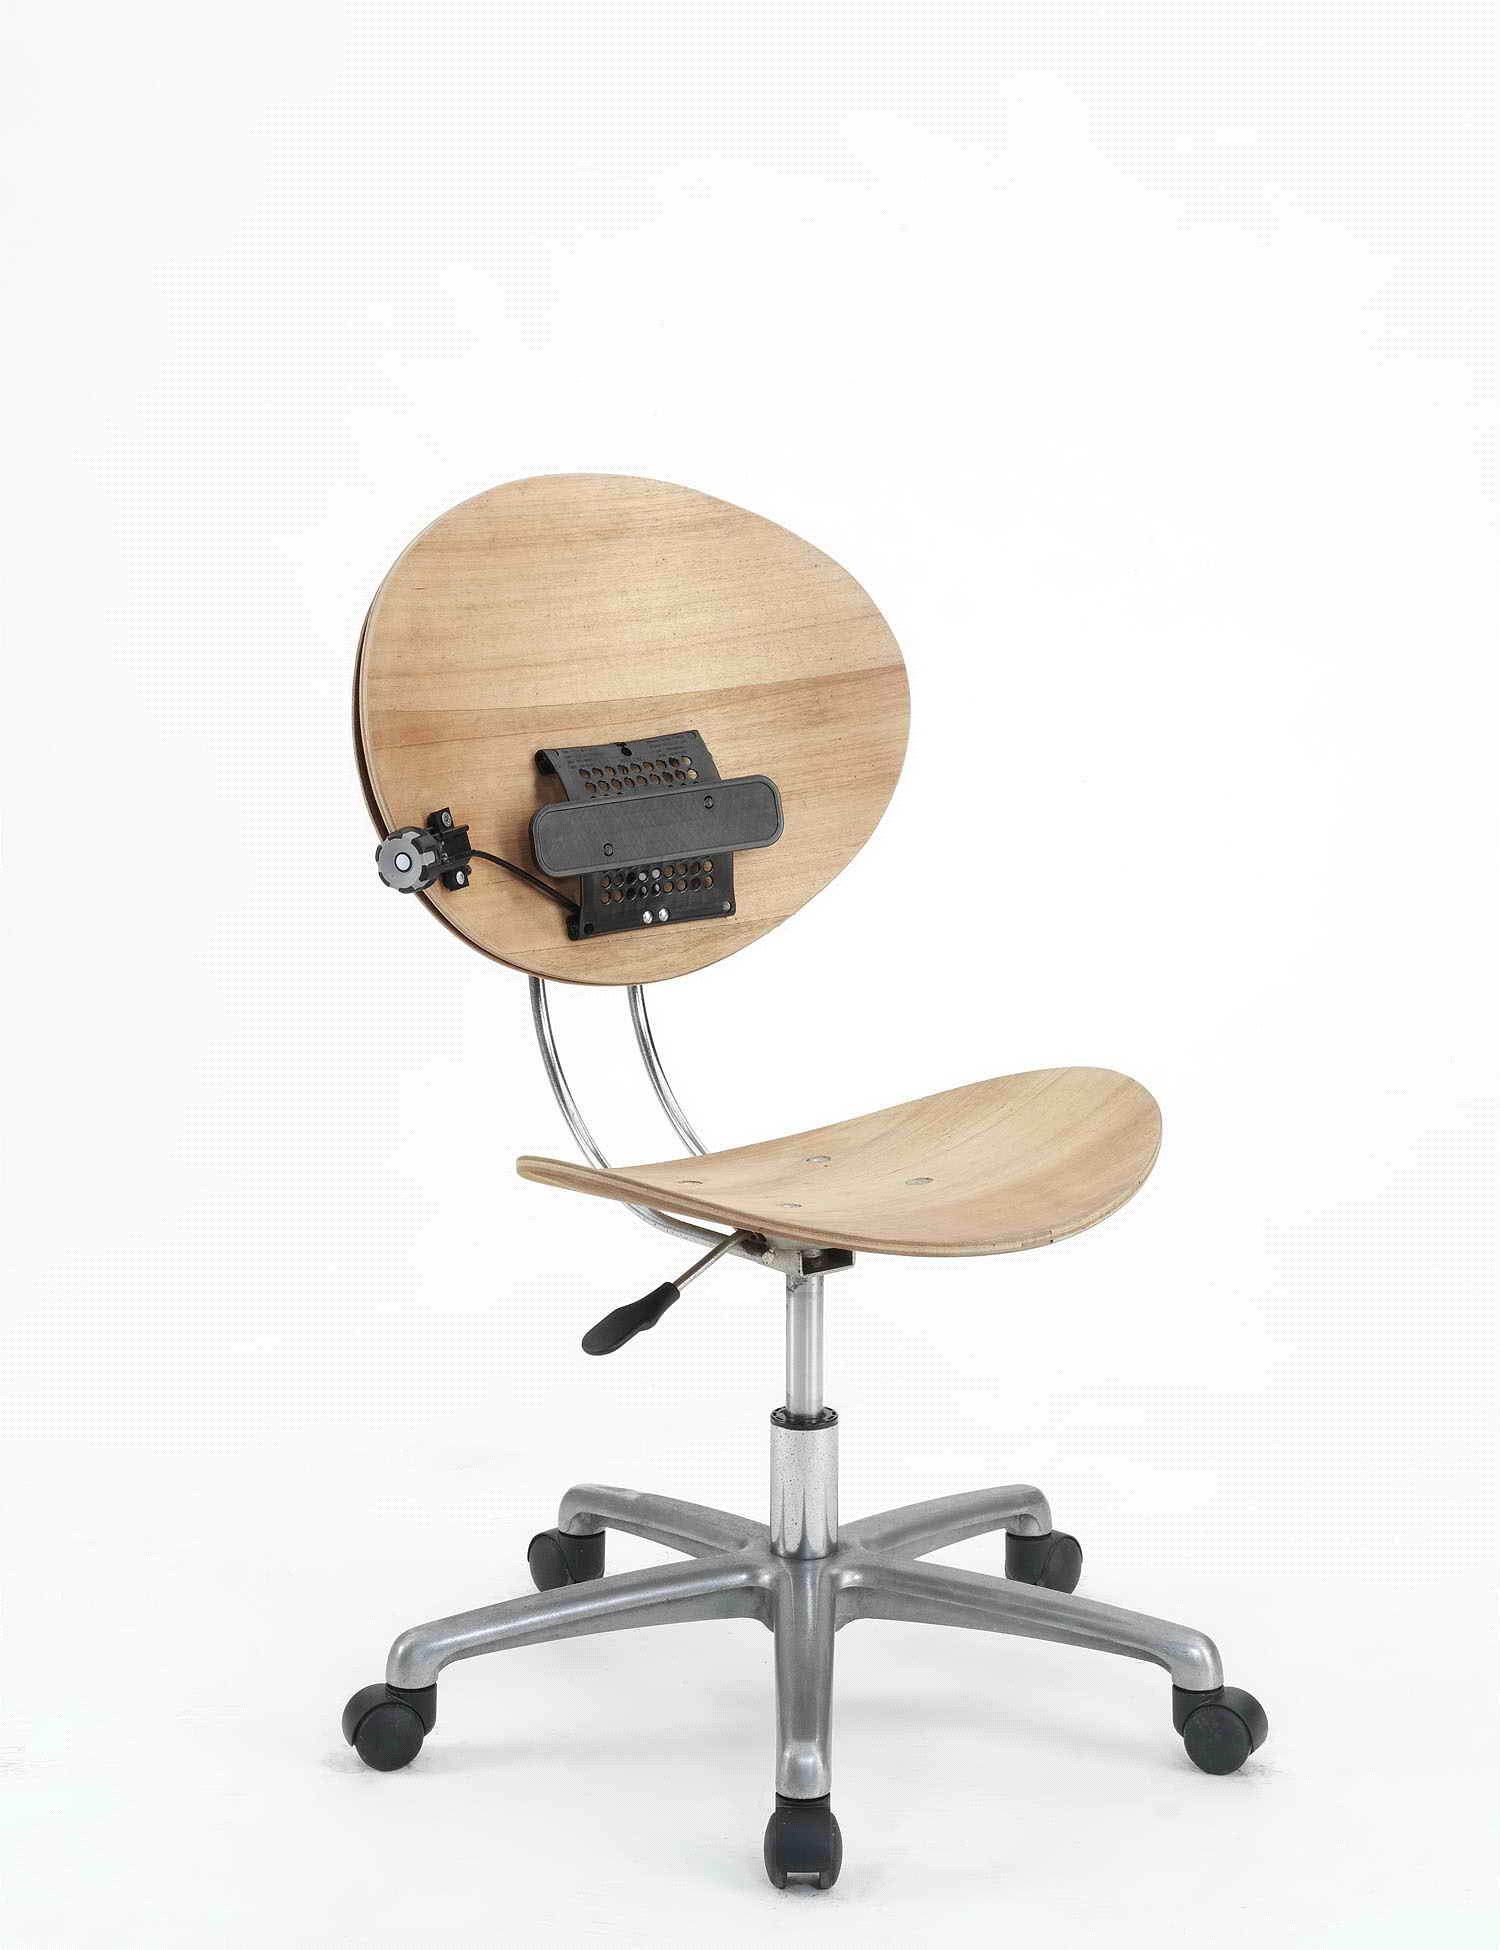 ch 603 sbs ajustable lumbar support mechanism for office chair